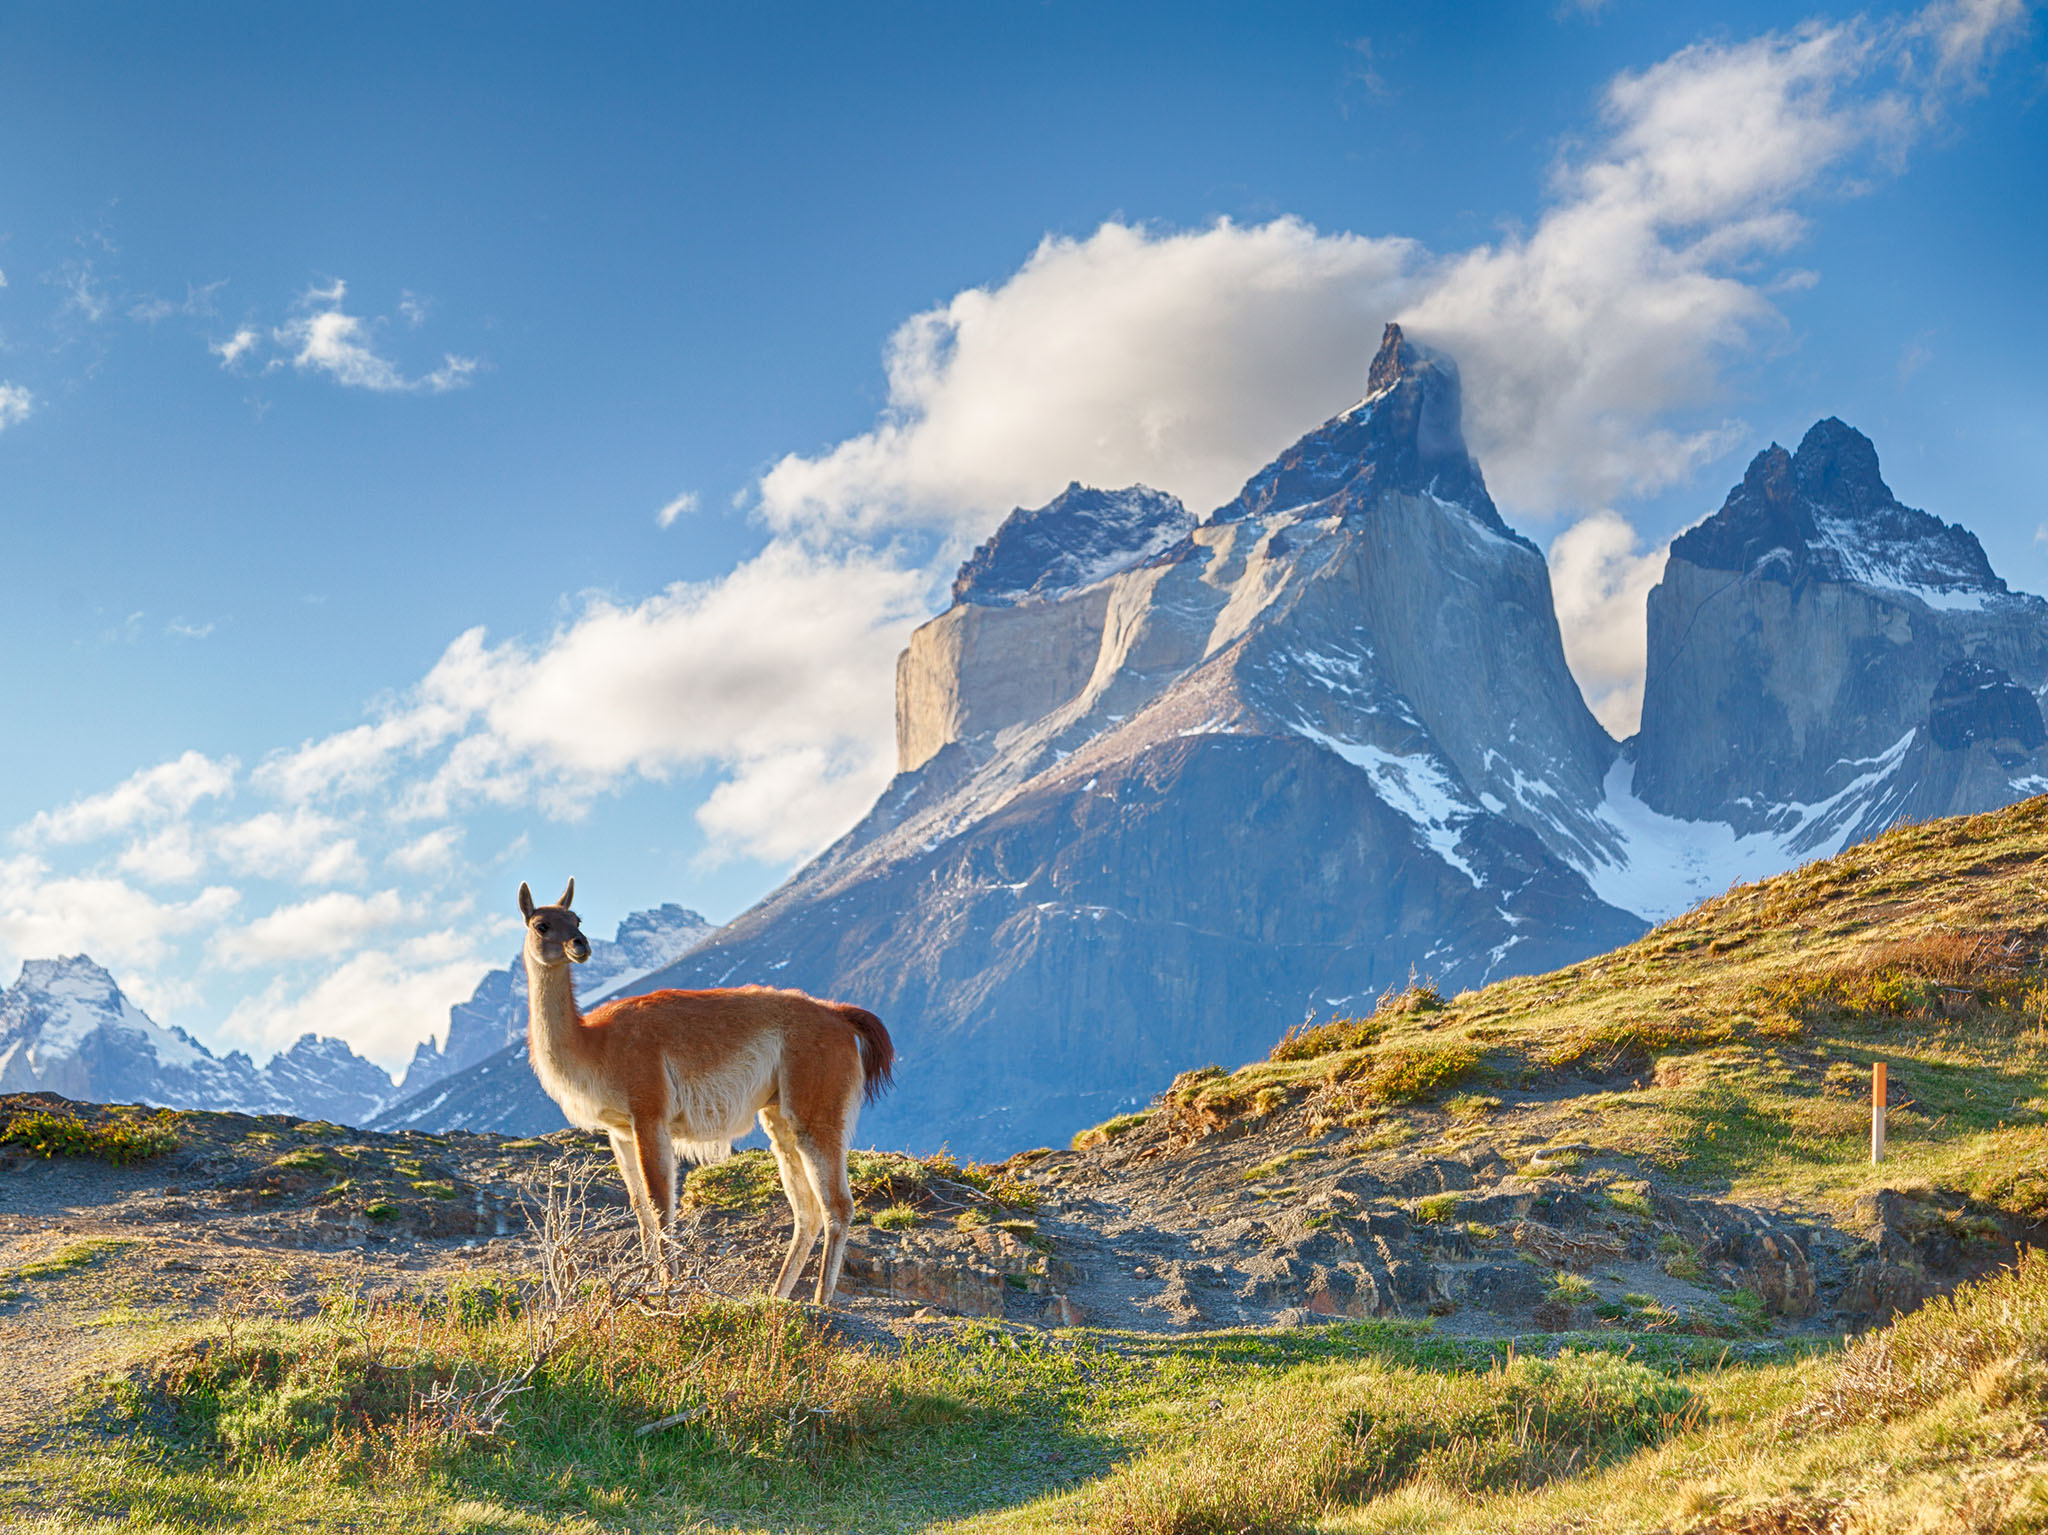 Chilean Patagonia is one of the cleanest places on the planet - Serious Facts